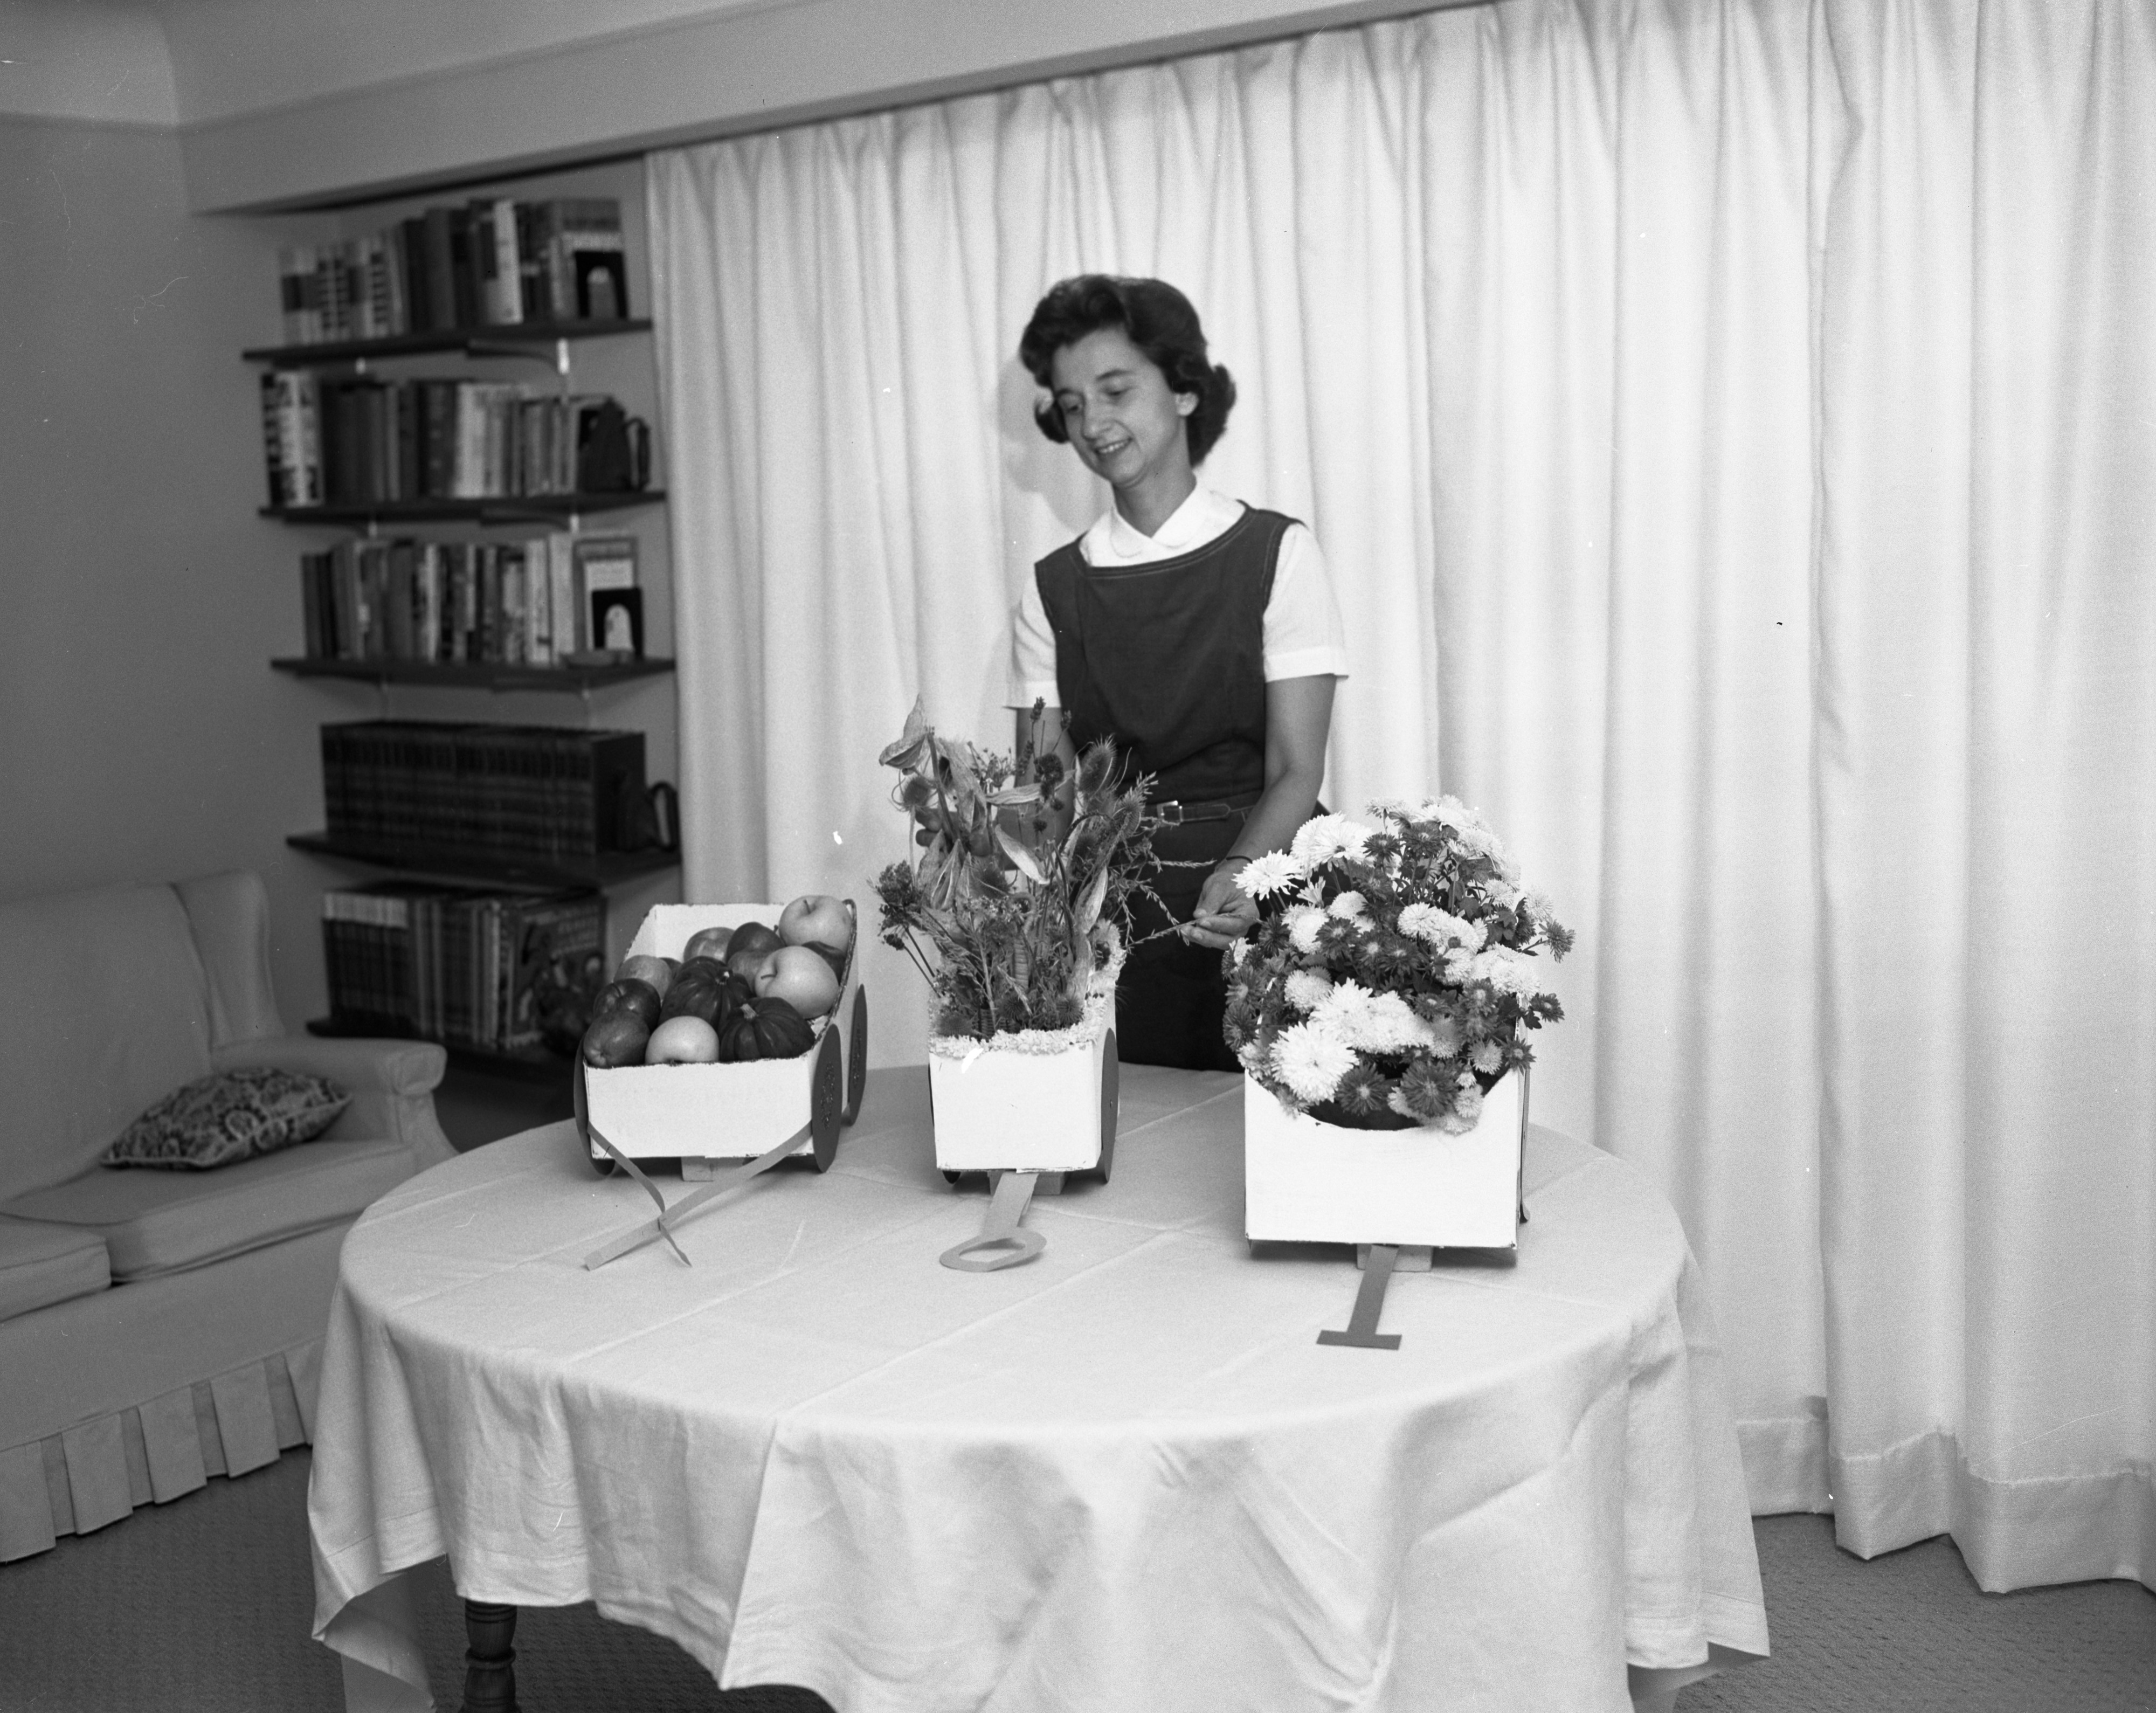 Mrs. William C. Castor Makes Table Decorations for First Unitarian Church Potluck Dinner, October 1963 image